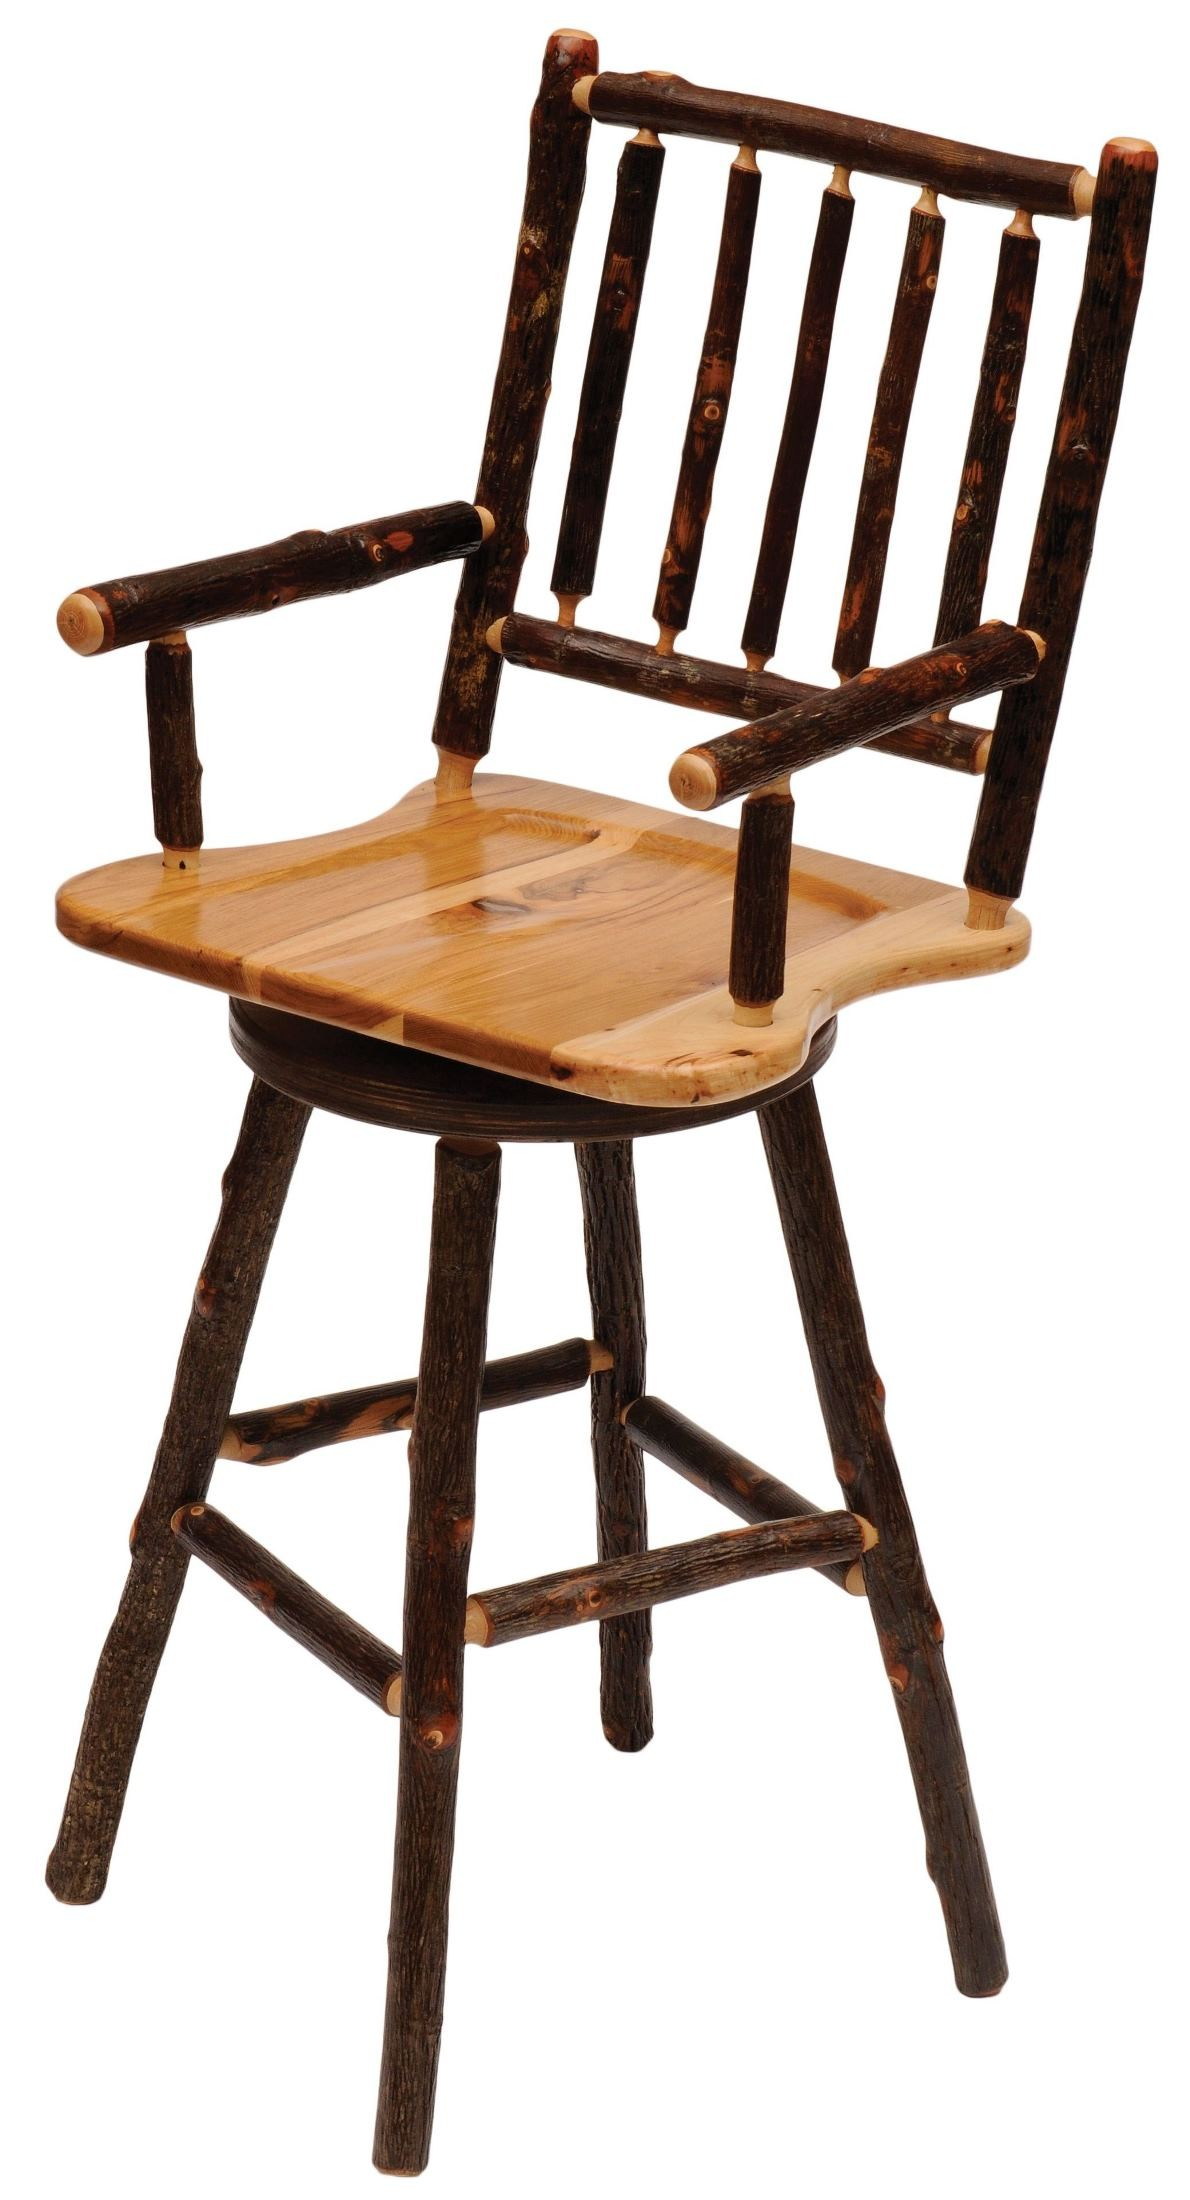 Very Impressive portraiture of 86570 hickory barstool with arms wooden seat.jpg with #A84023 color and 1190x2200 pixels